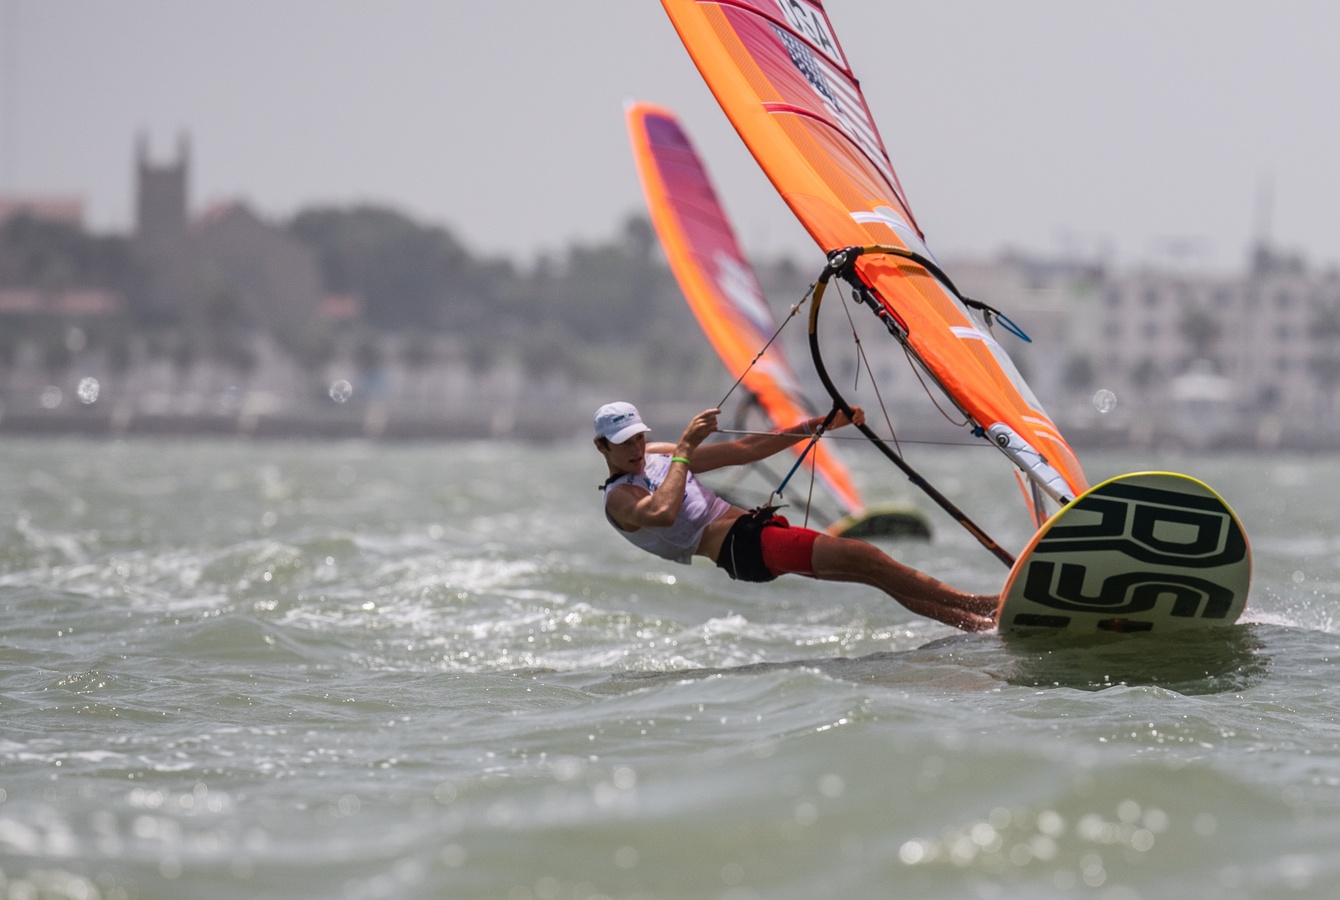 Team USA streaks to lead three classes at the Youth Sailing World Championships